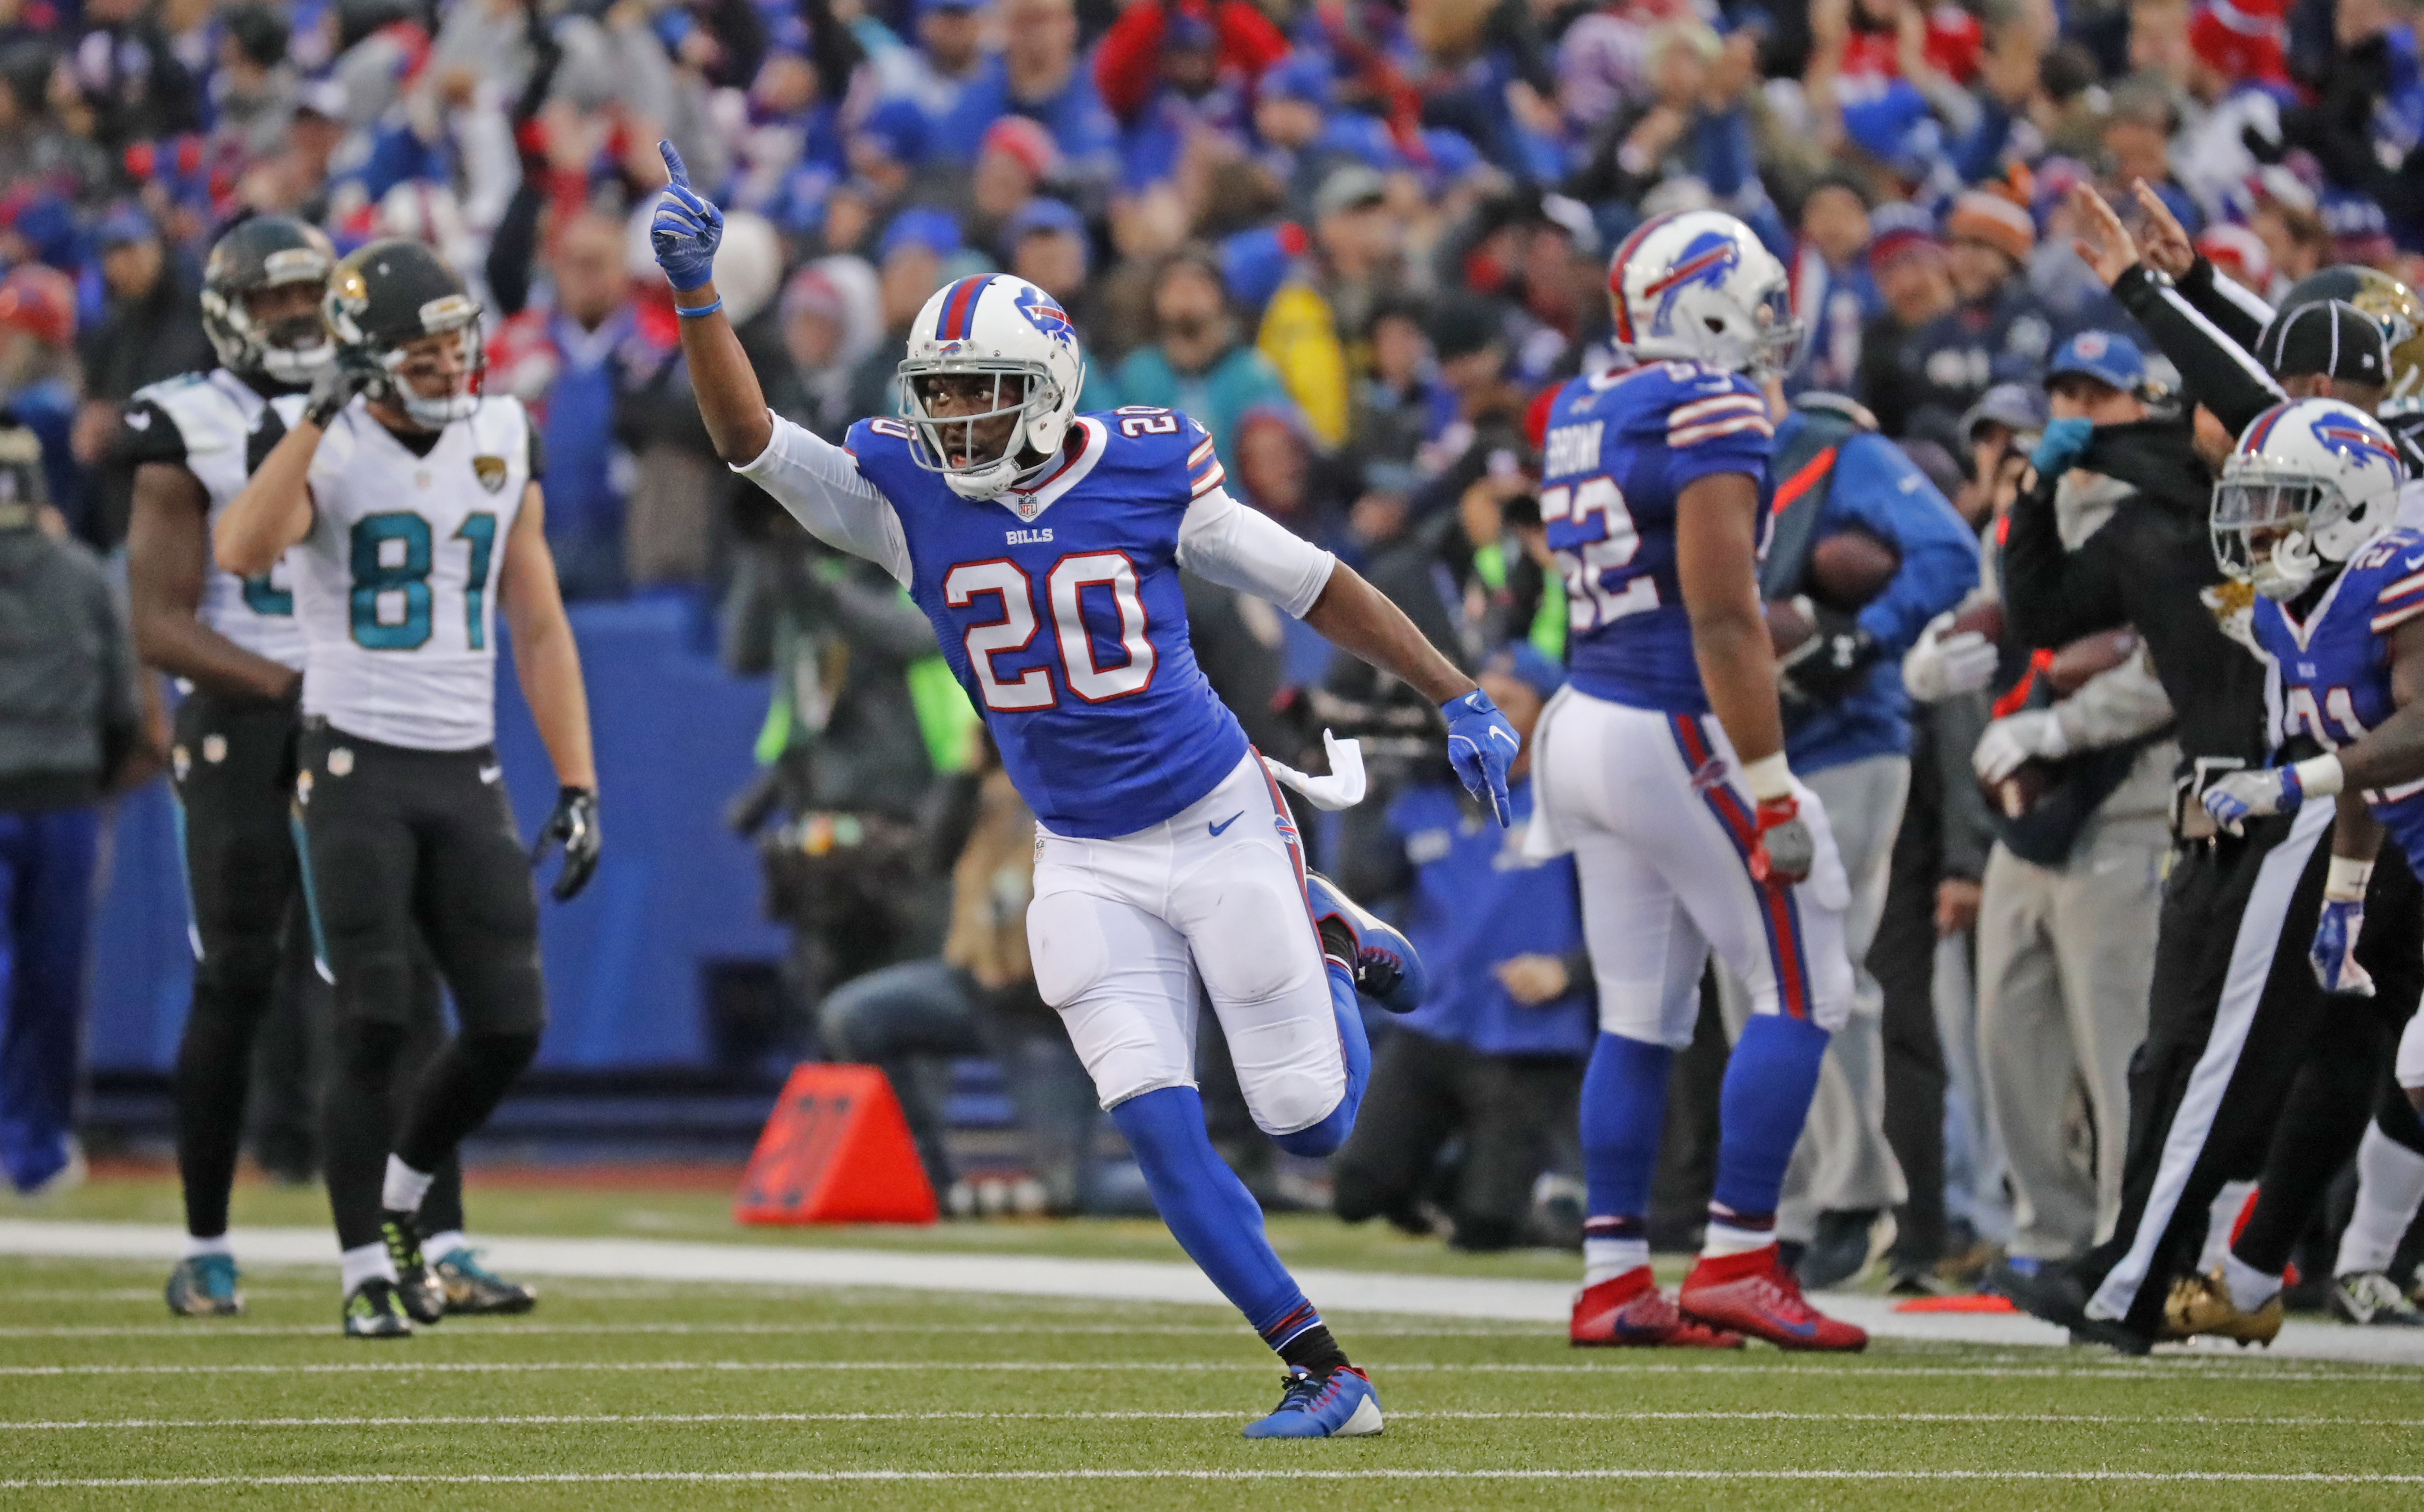 Buffalo Bills Corey Graham runs back to the bench after the defense stopped the Jacksonville Jaguars during the fourth quarter. (Harry Scull Jr./Buffalo News)